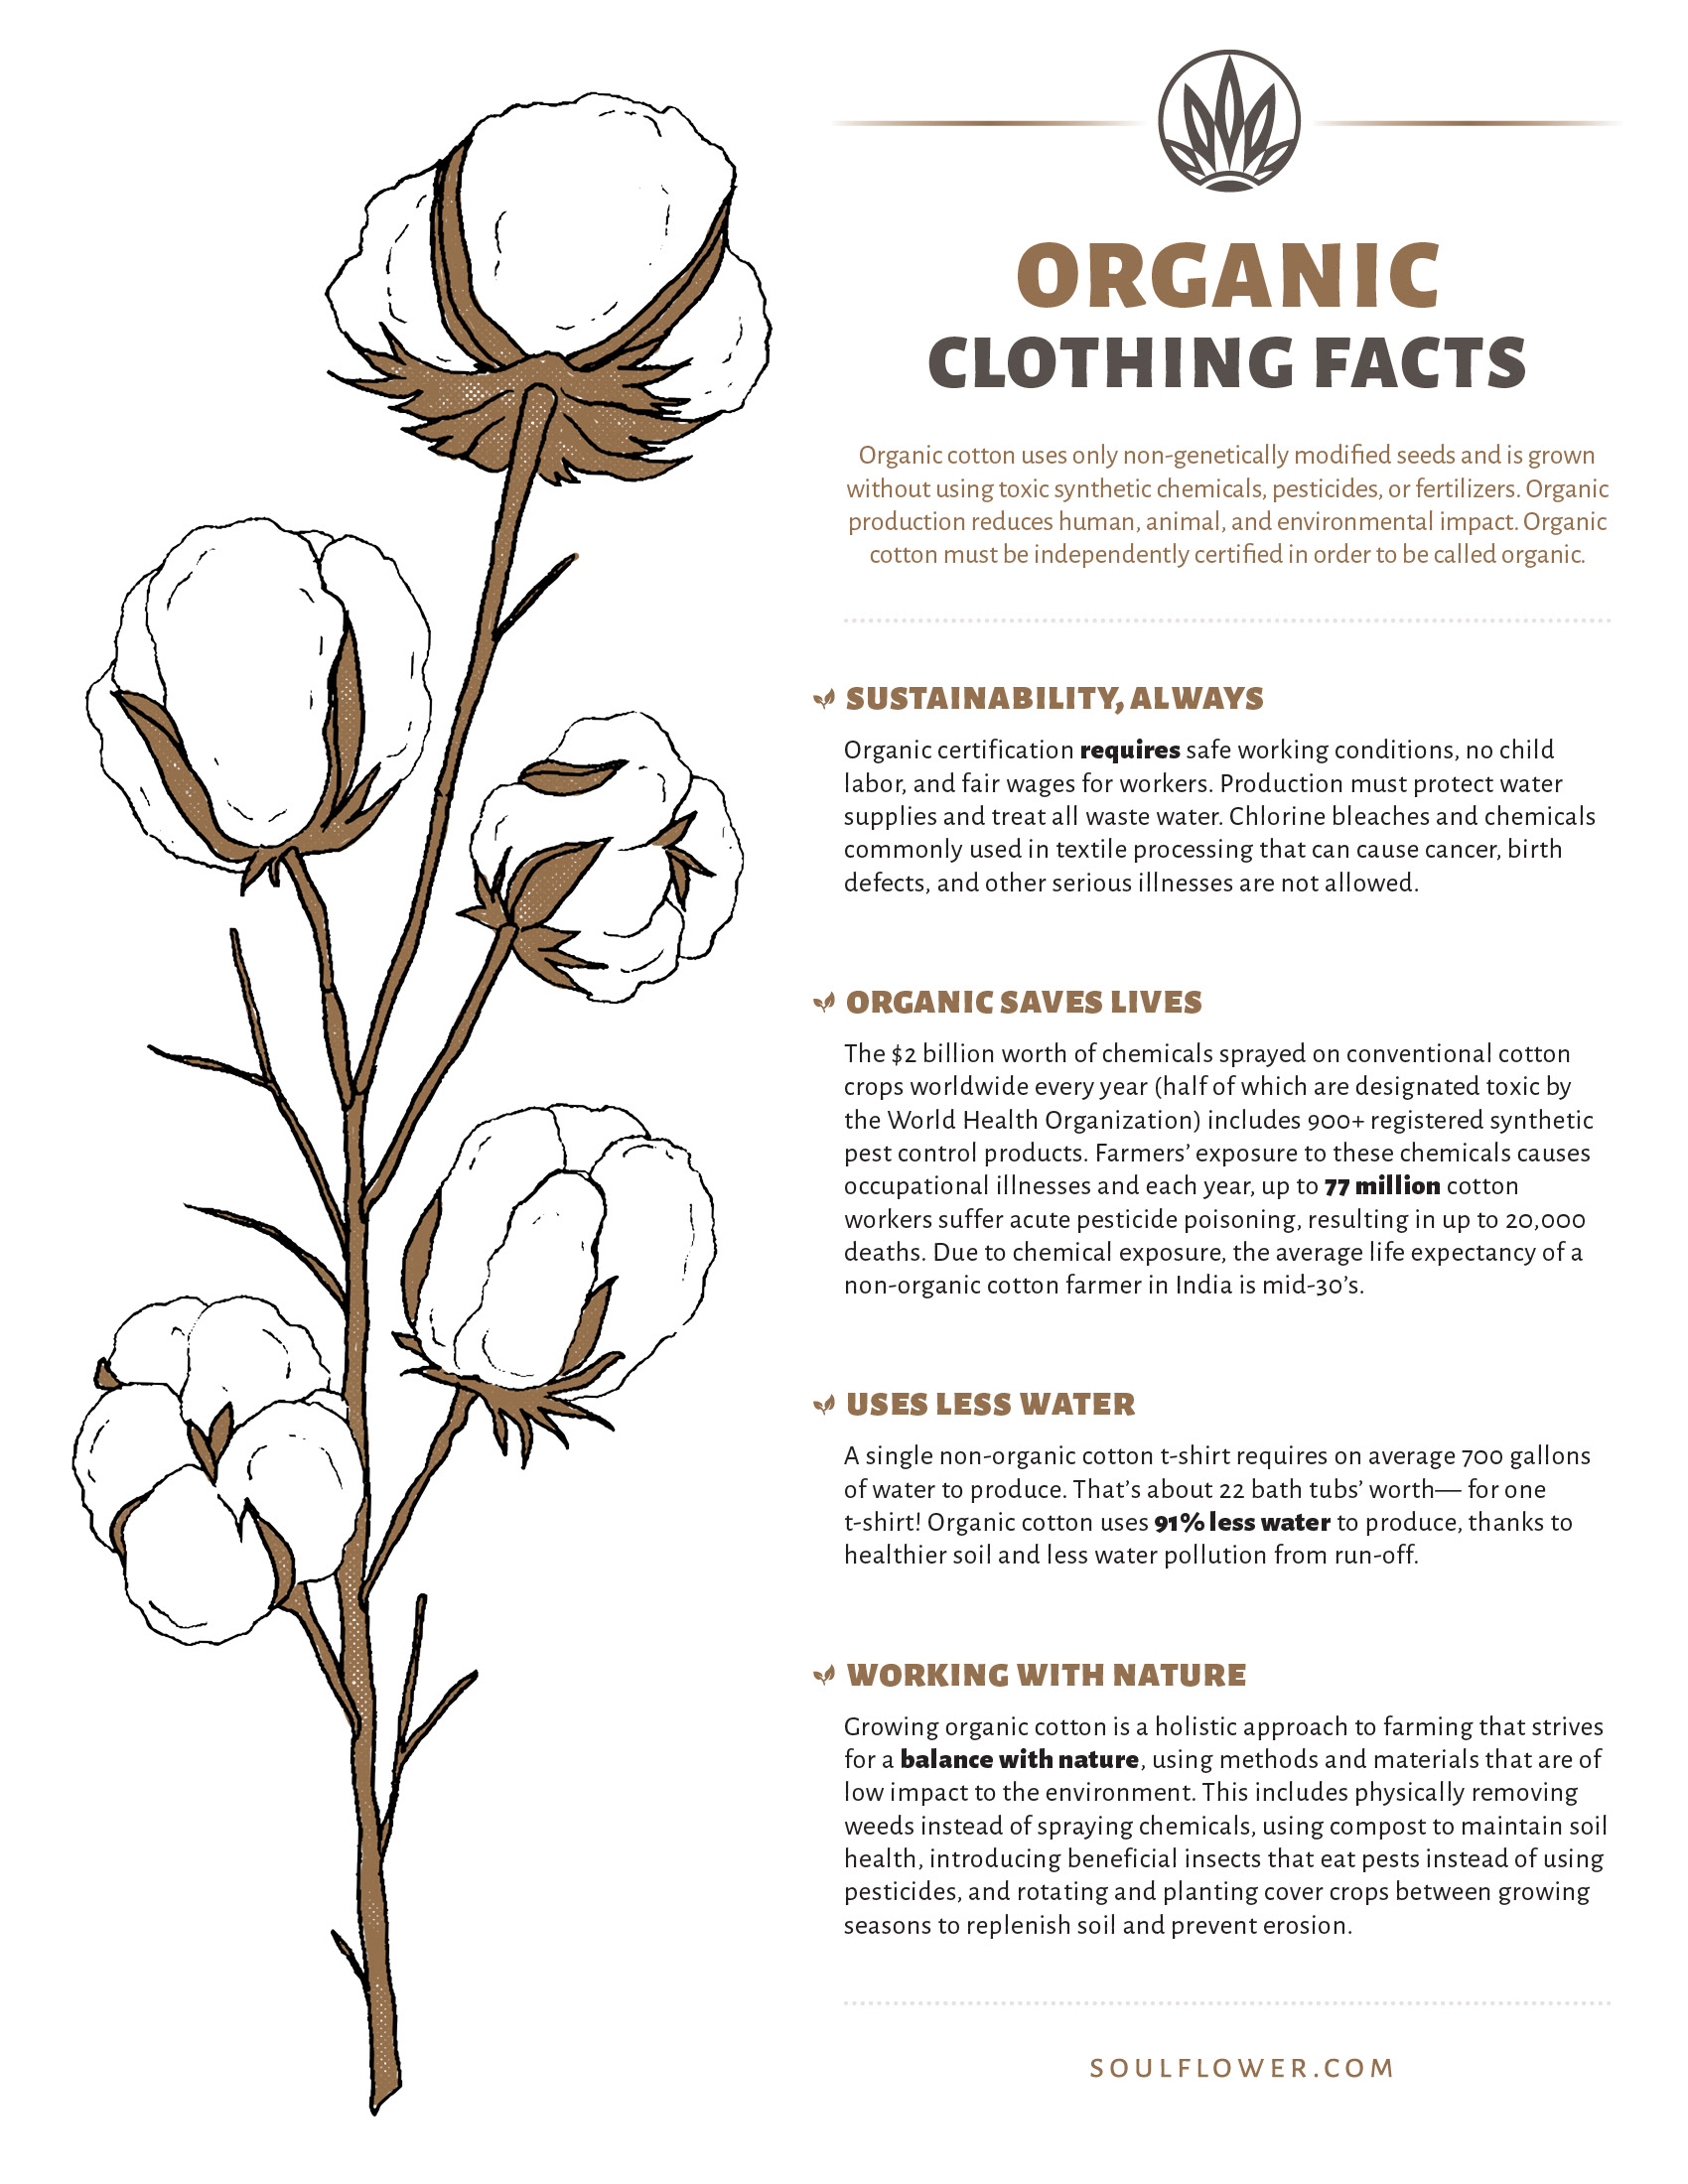 Why Organic Cotton is Better - Organic Cotton Facts - Printable